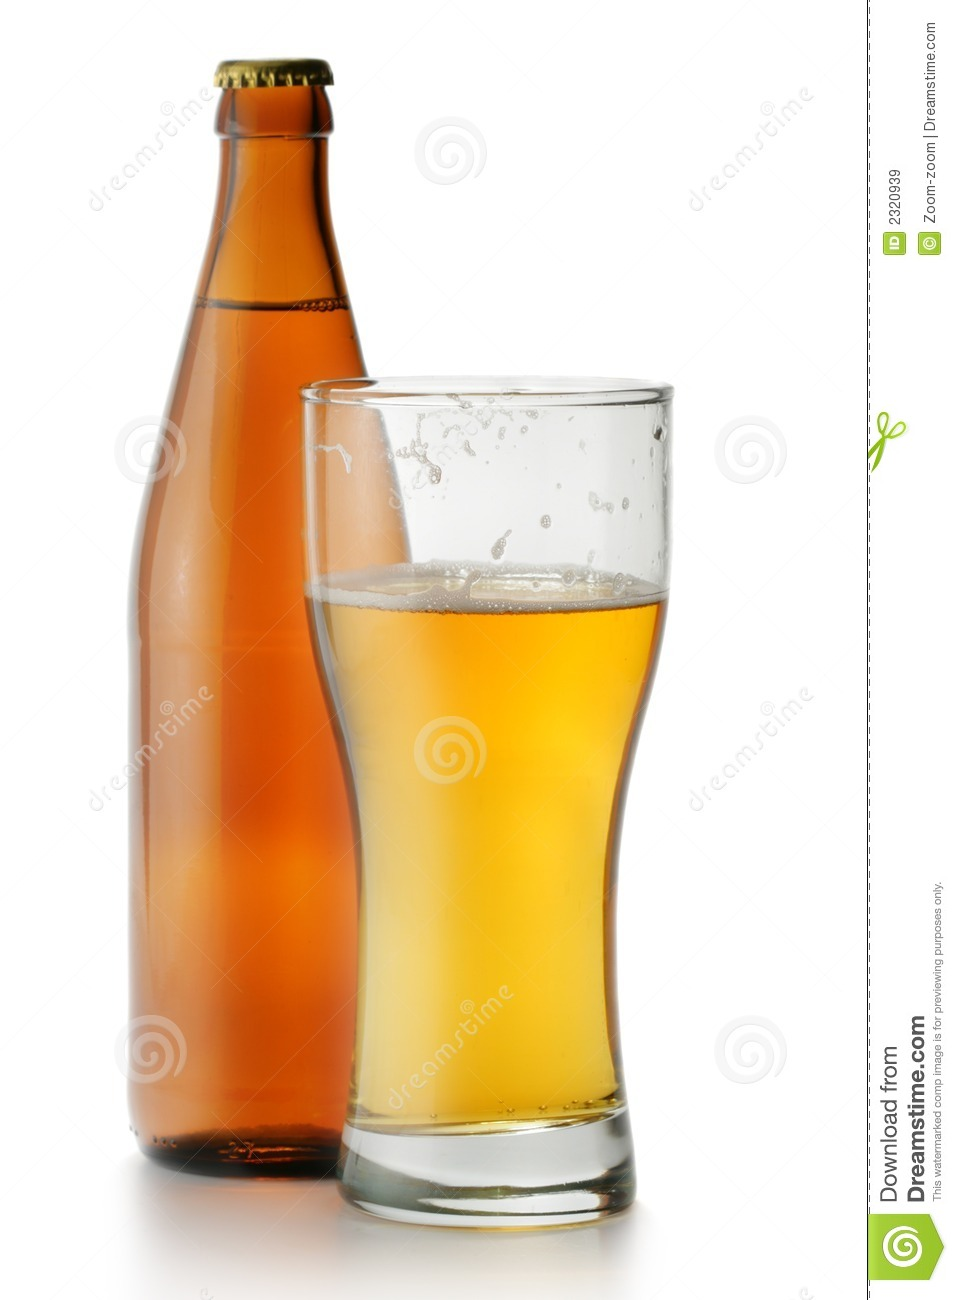 Beer Bottle And Glass Royalty Free Stock Images - Image ...